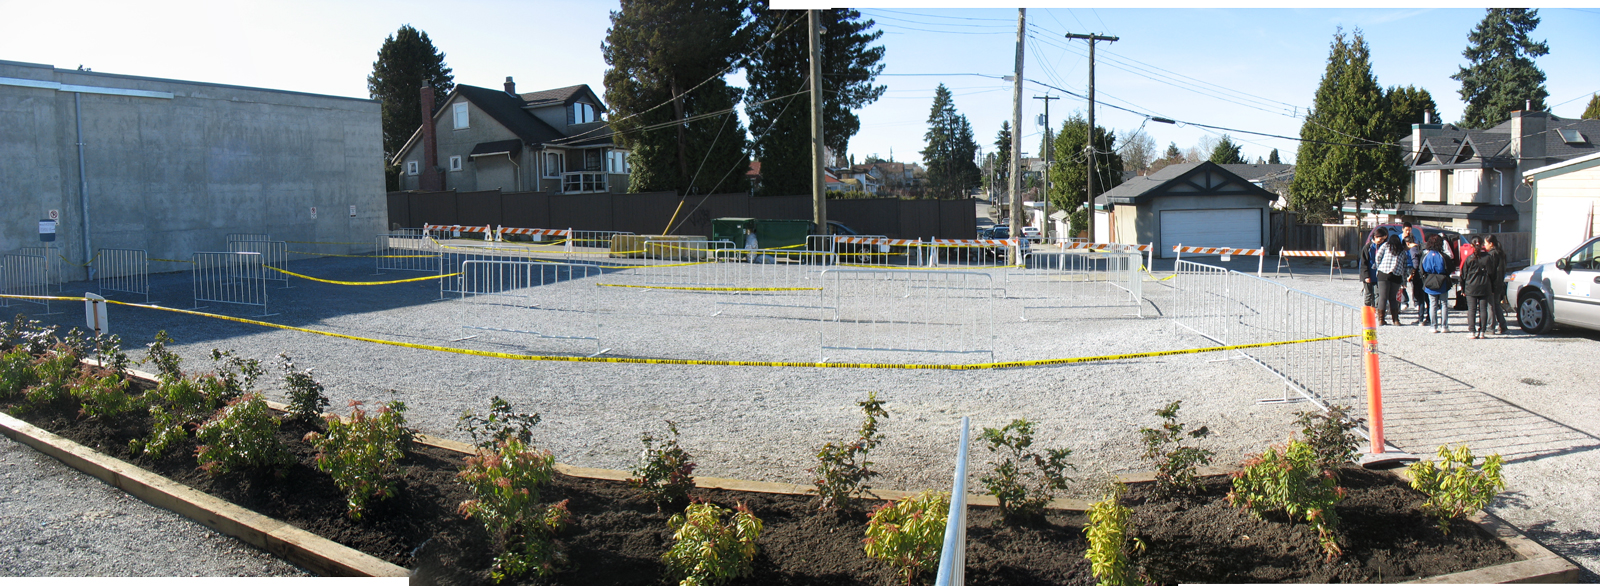 A panoramic photo of the queue management setup in the adjacent parking lot. Click for a larger version!